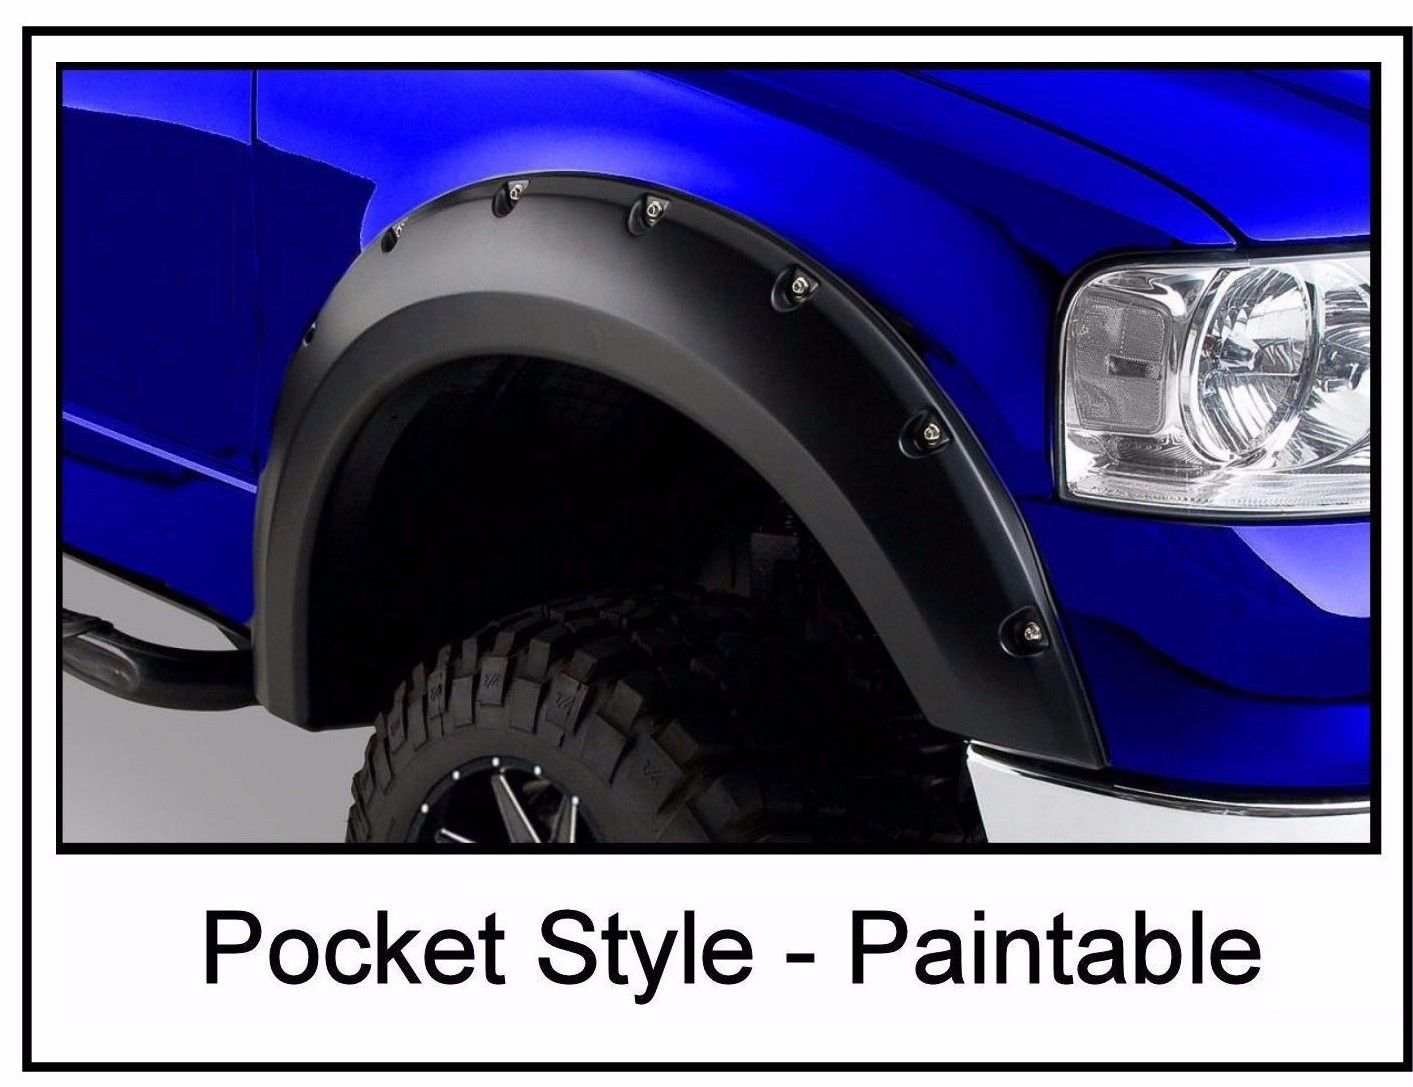 2004 � 2008 Ford F150 Pocket Style Riveted Fender Flares by Auto Express